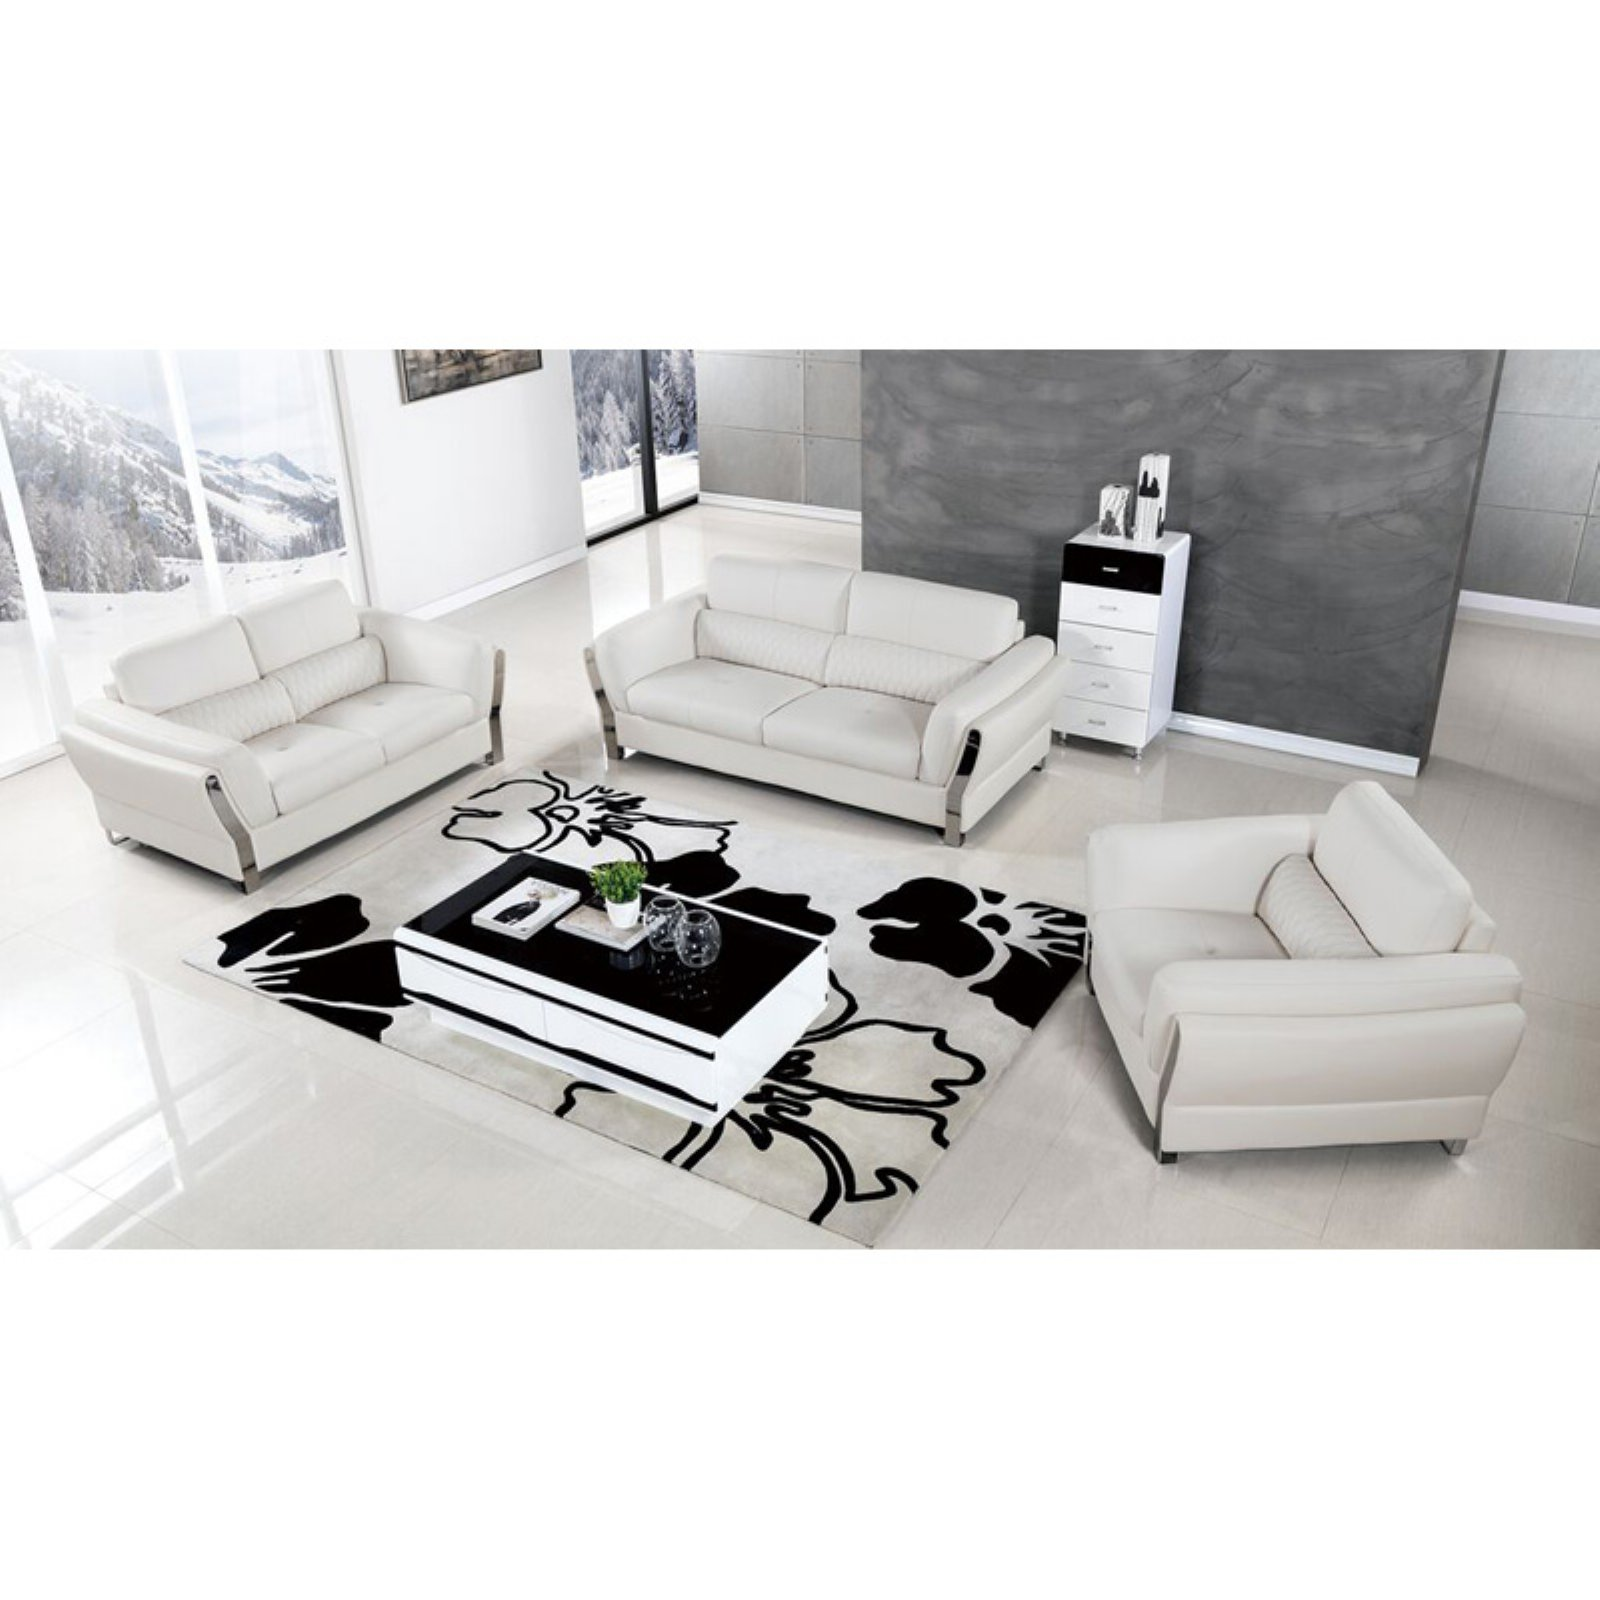 American Eagle Furniture Chelsea Upholstered 3 Piece Sofa Set With Tufted Waist